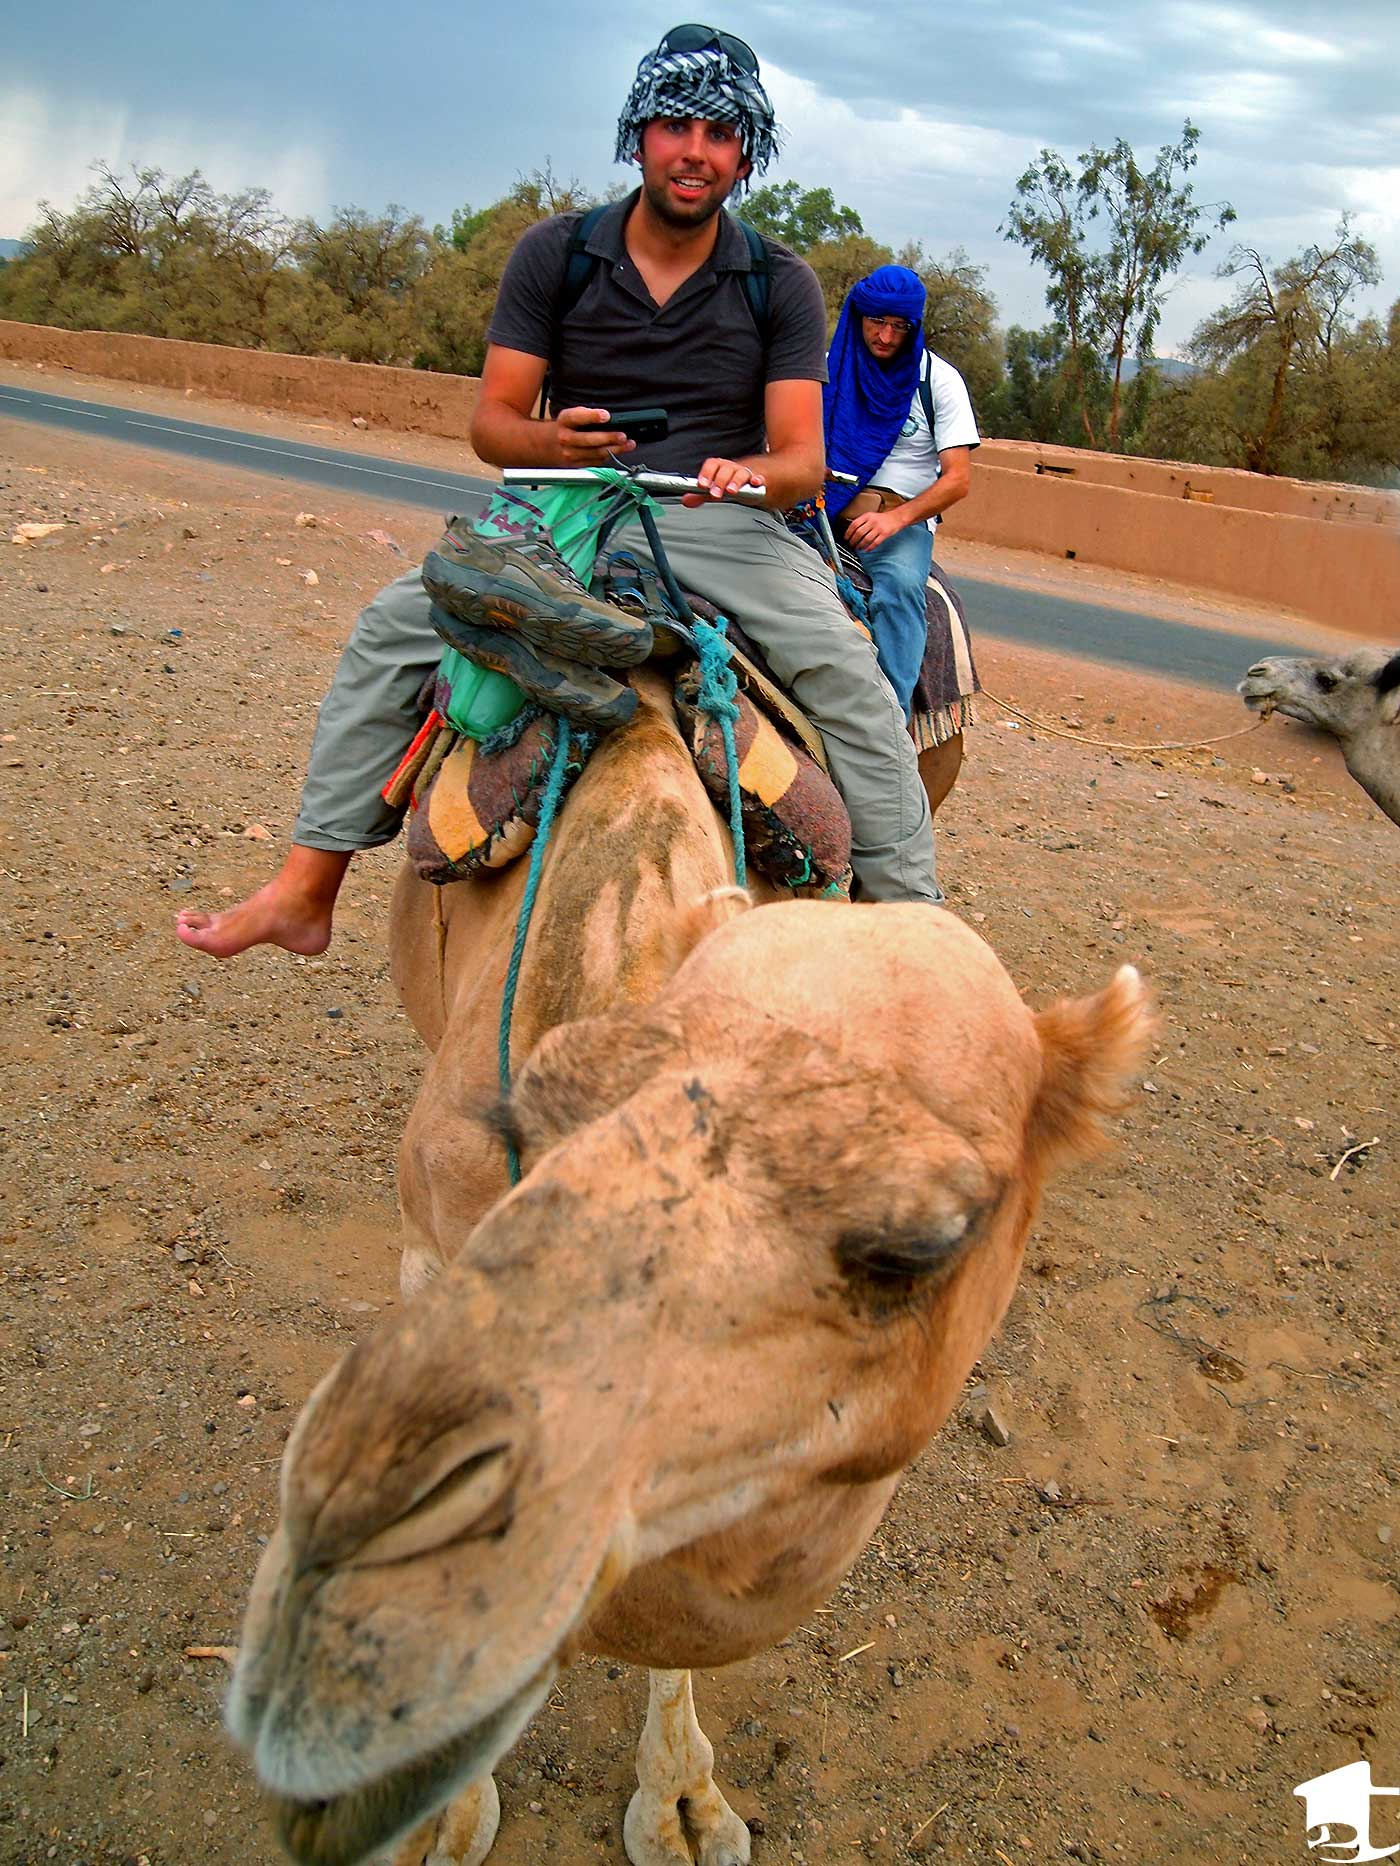 Riding a camel into the Sahara